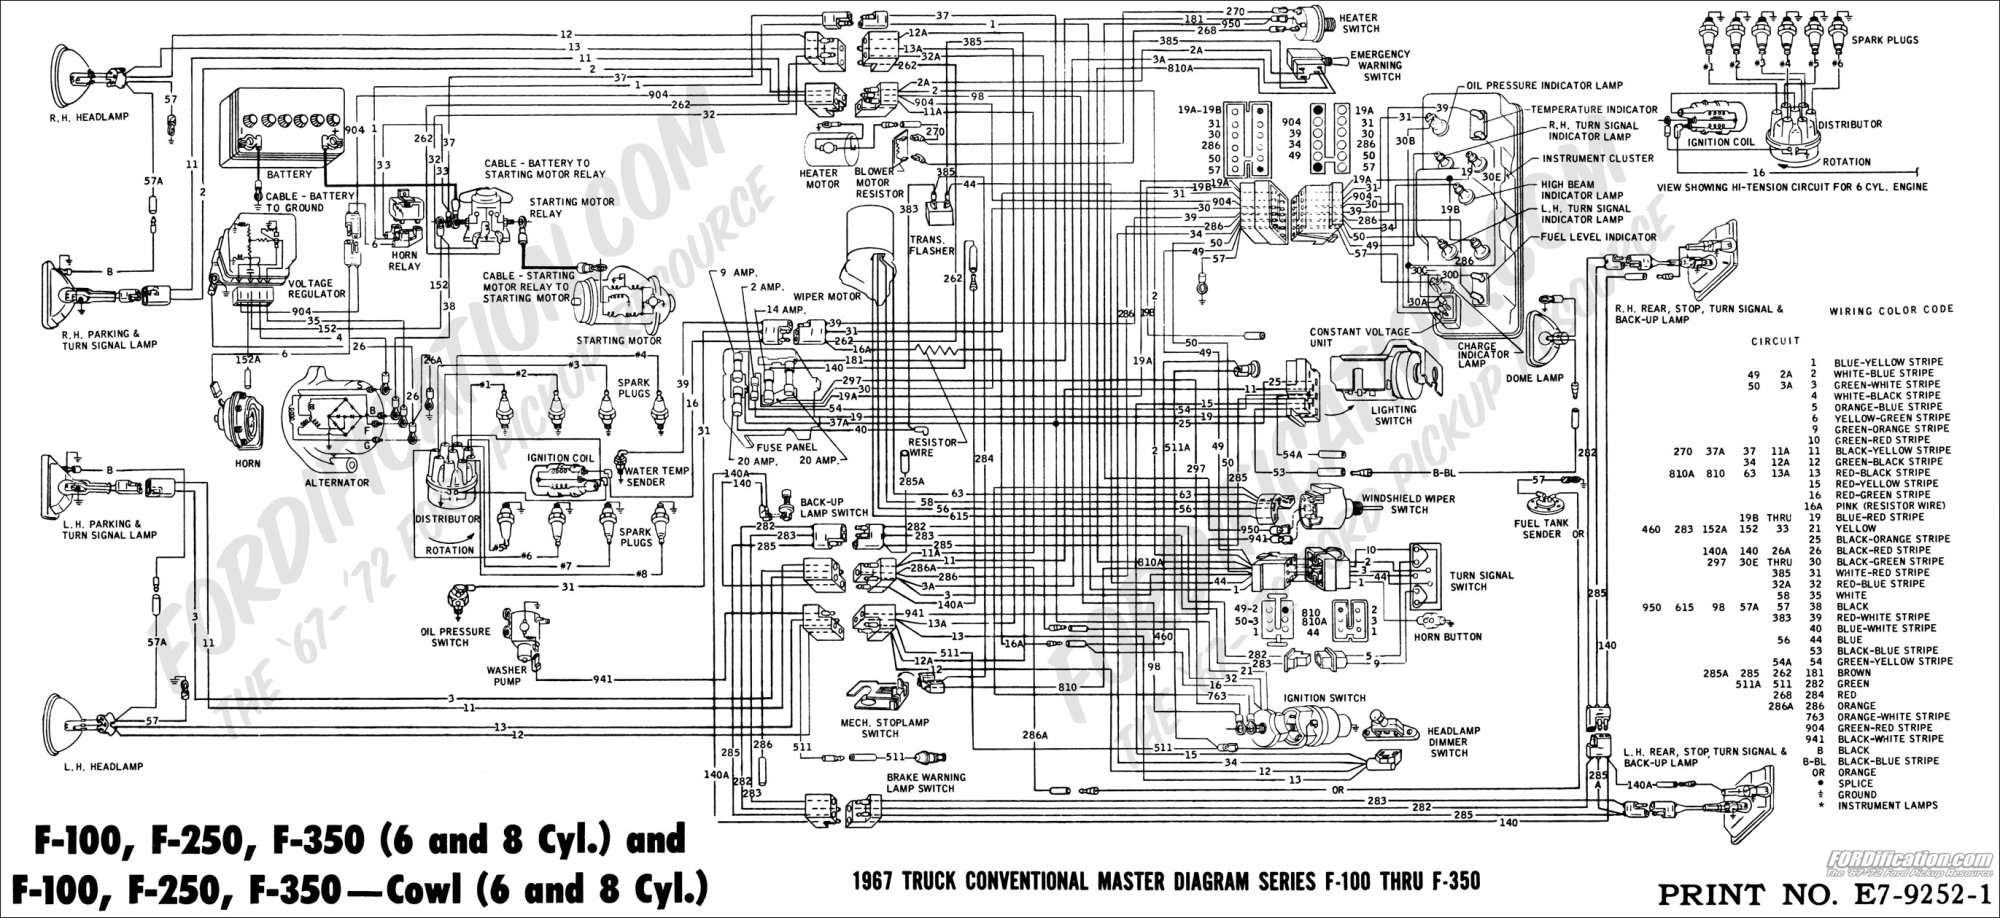 hight resolution of ford f150 wiring wiring diagram expert 2005 ford f150 trailer wiring harness diagram 2005 ford f150 wiring harness diagram